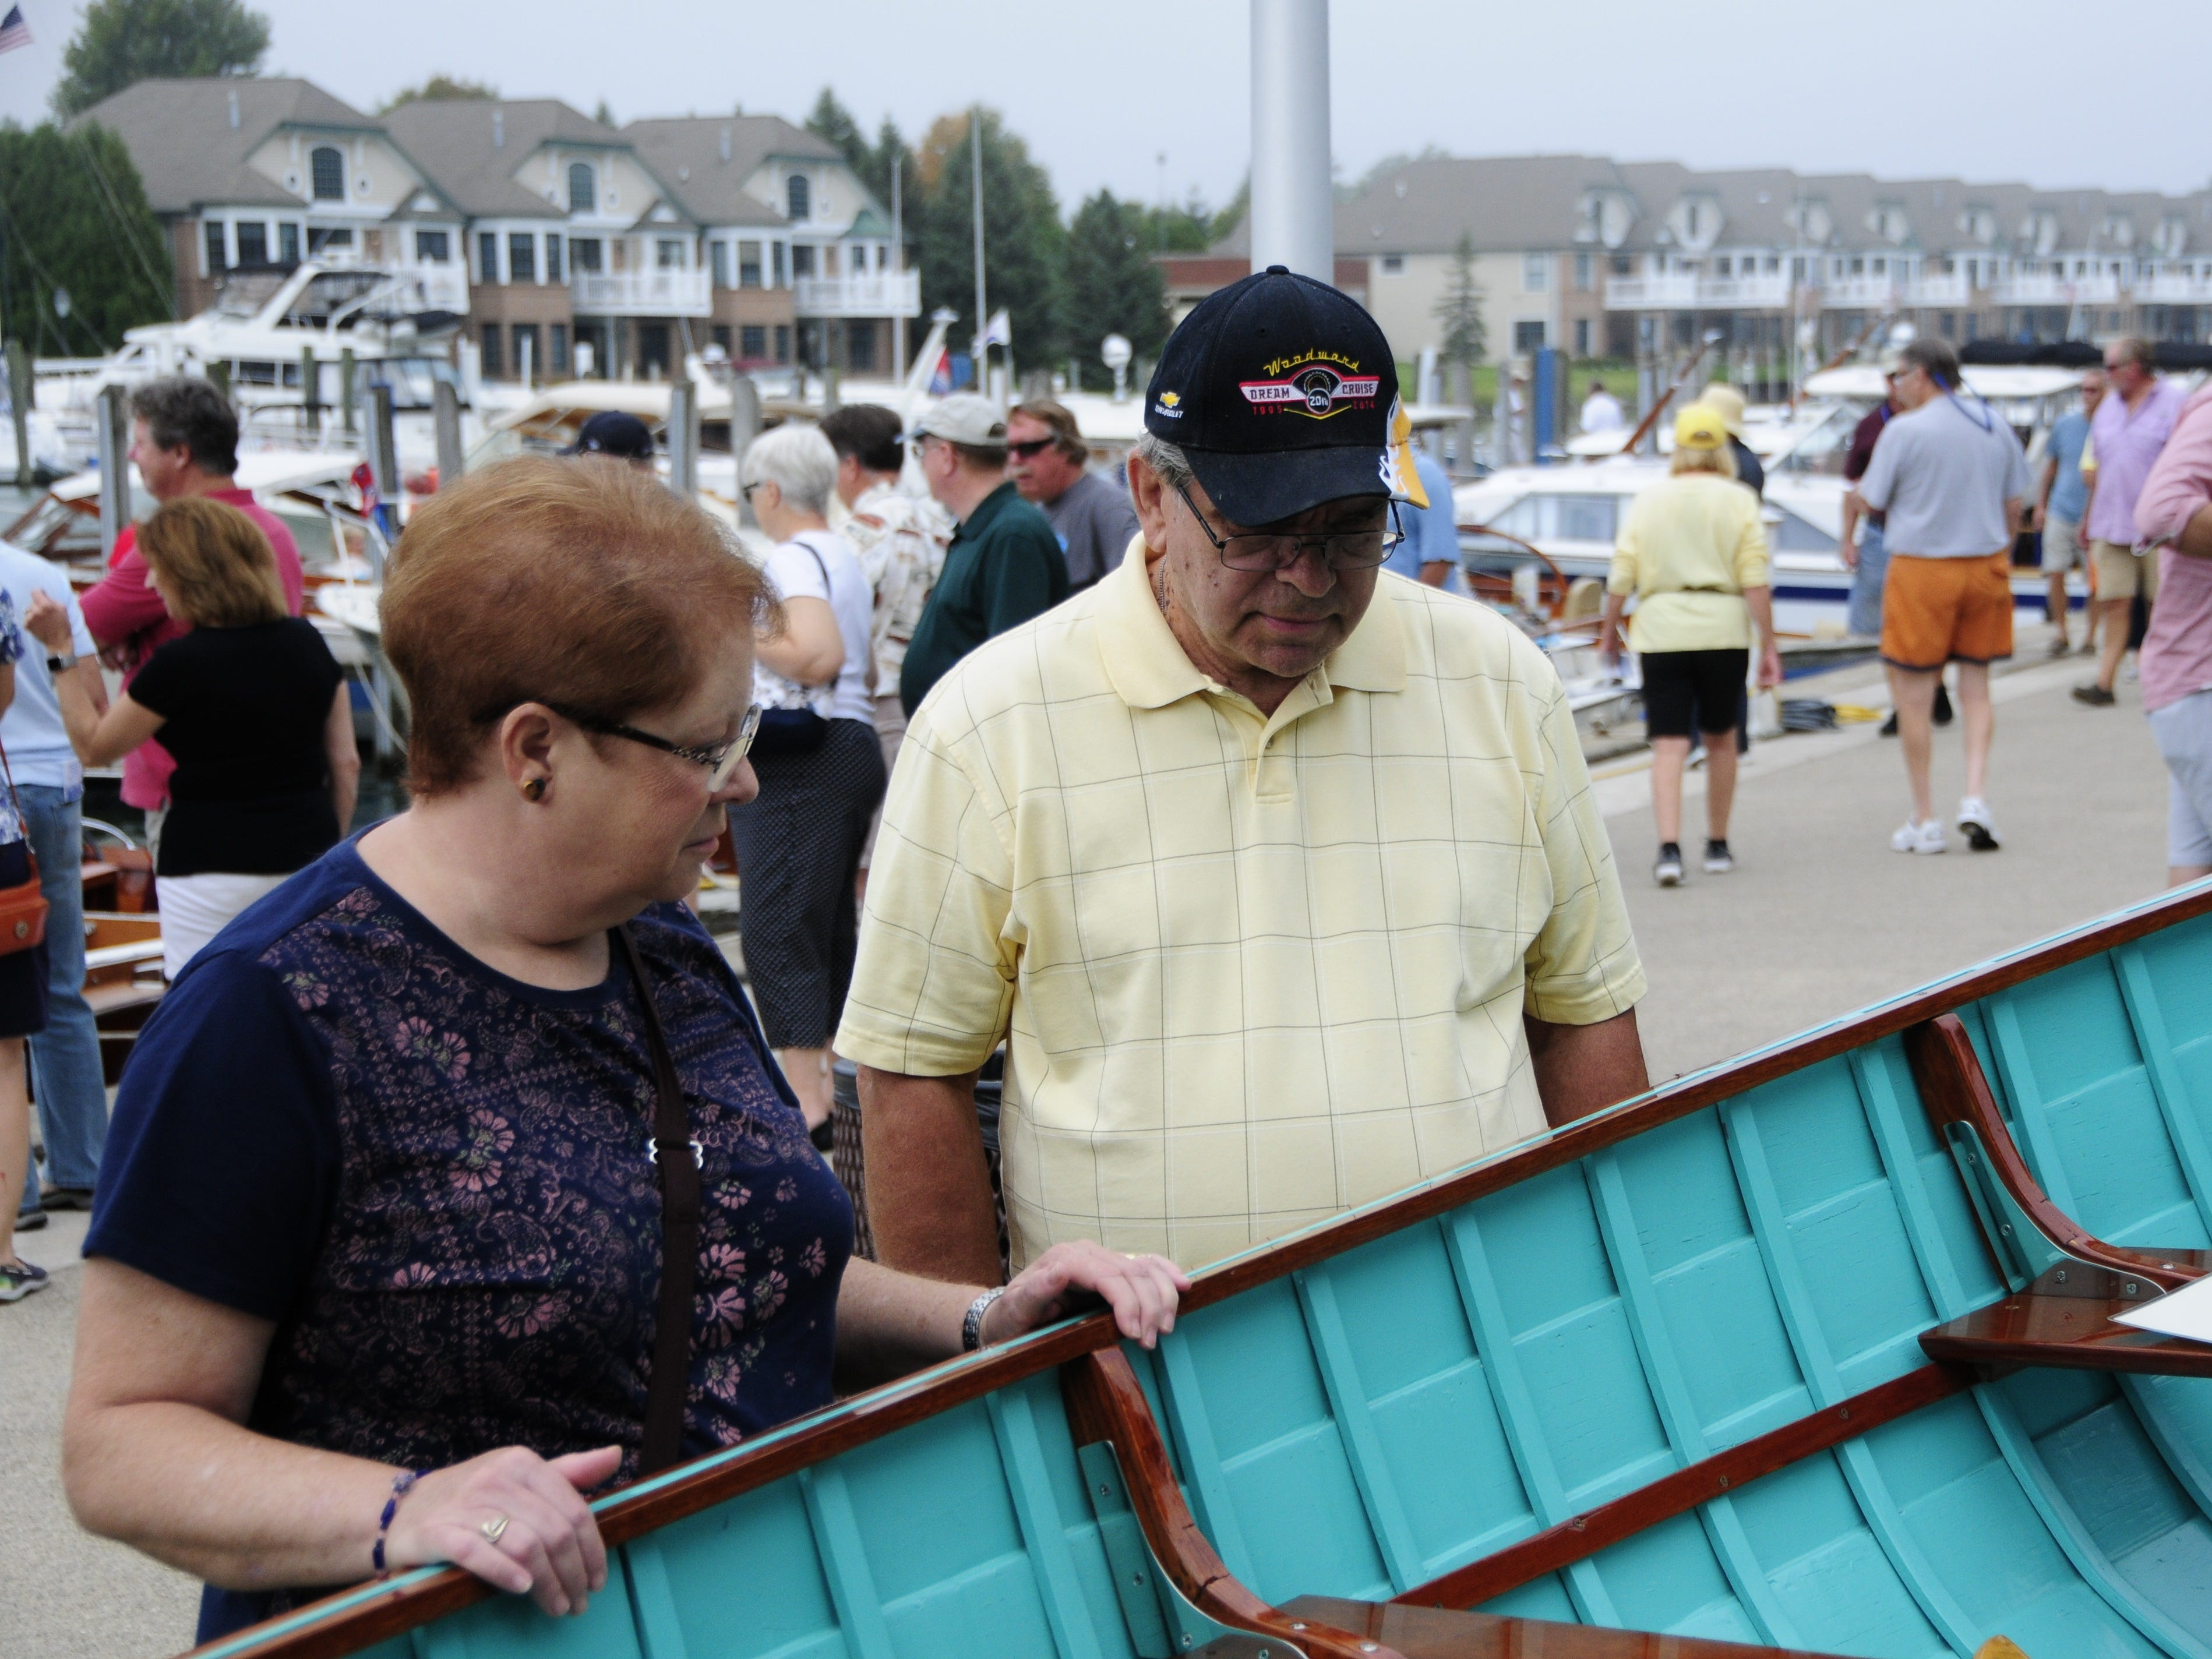 Glenda and Larry Day look at a 1956 Lyman lapstrake utility boat during the Antique and Classic Boat Society International Boat Show on Saturday, Sept. 15, 2018.